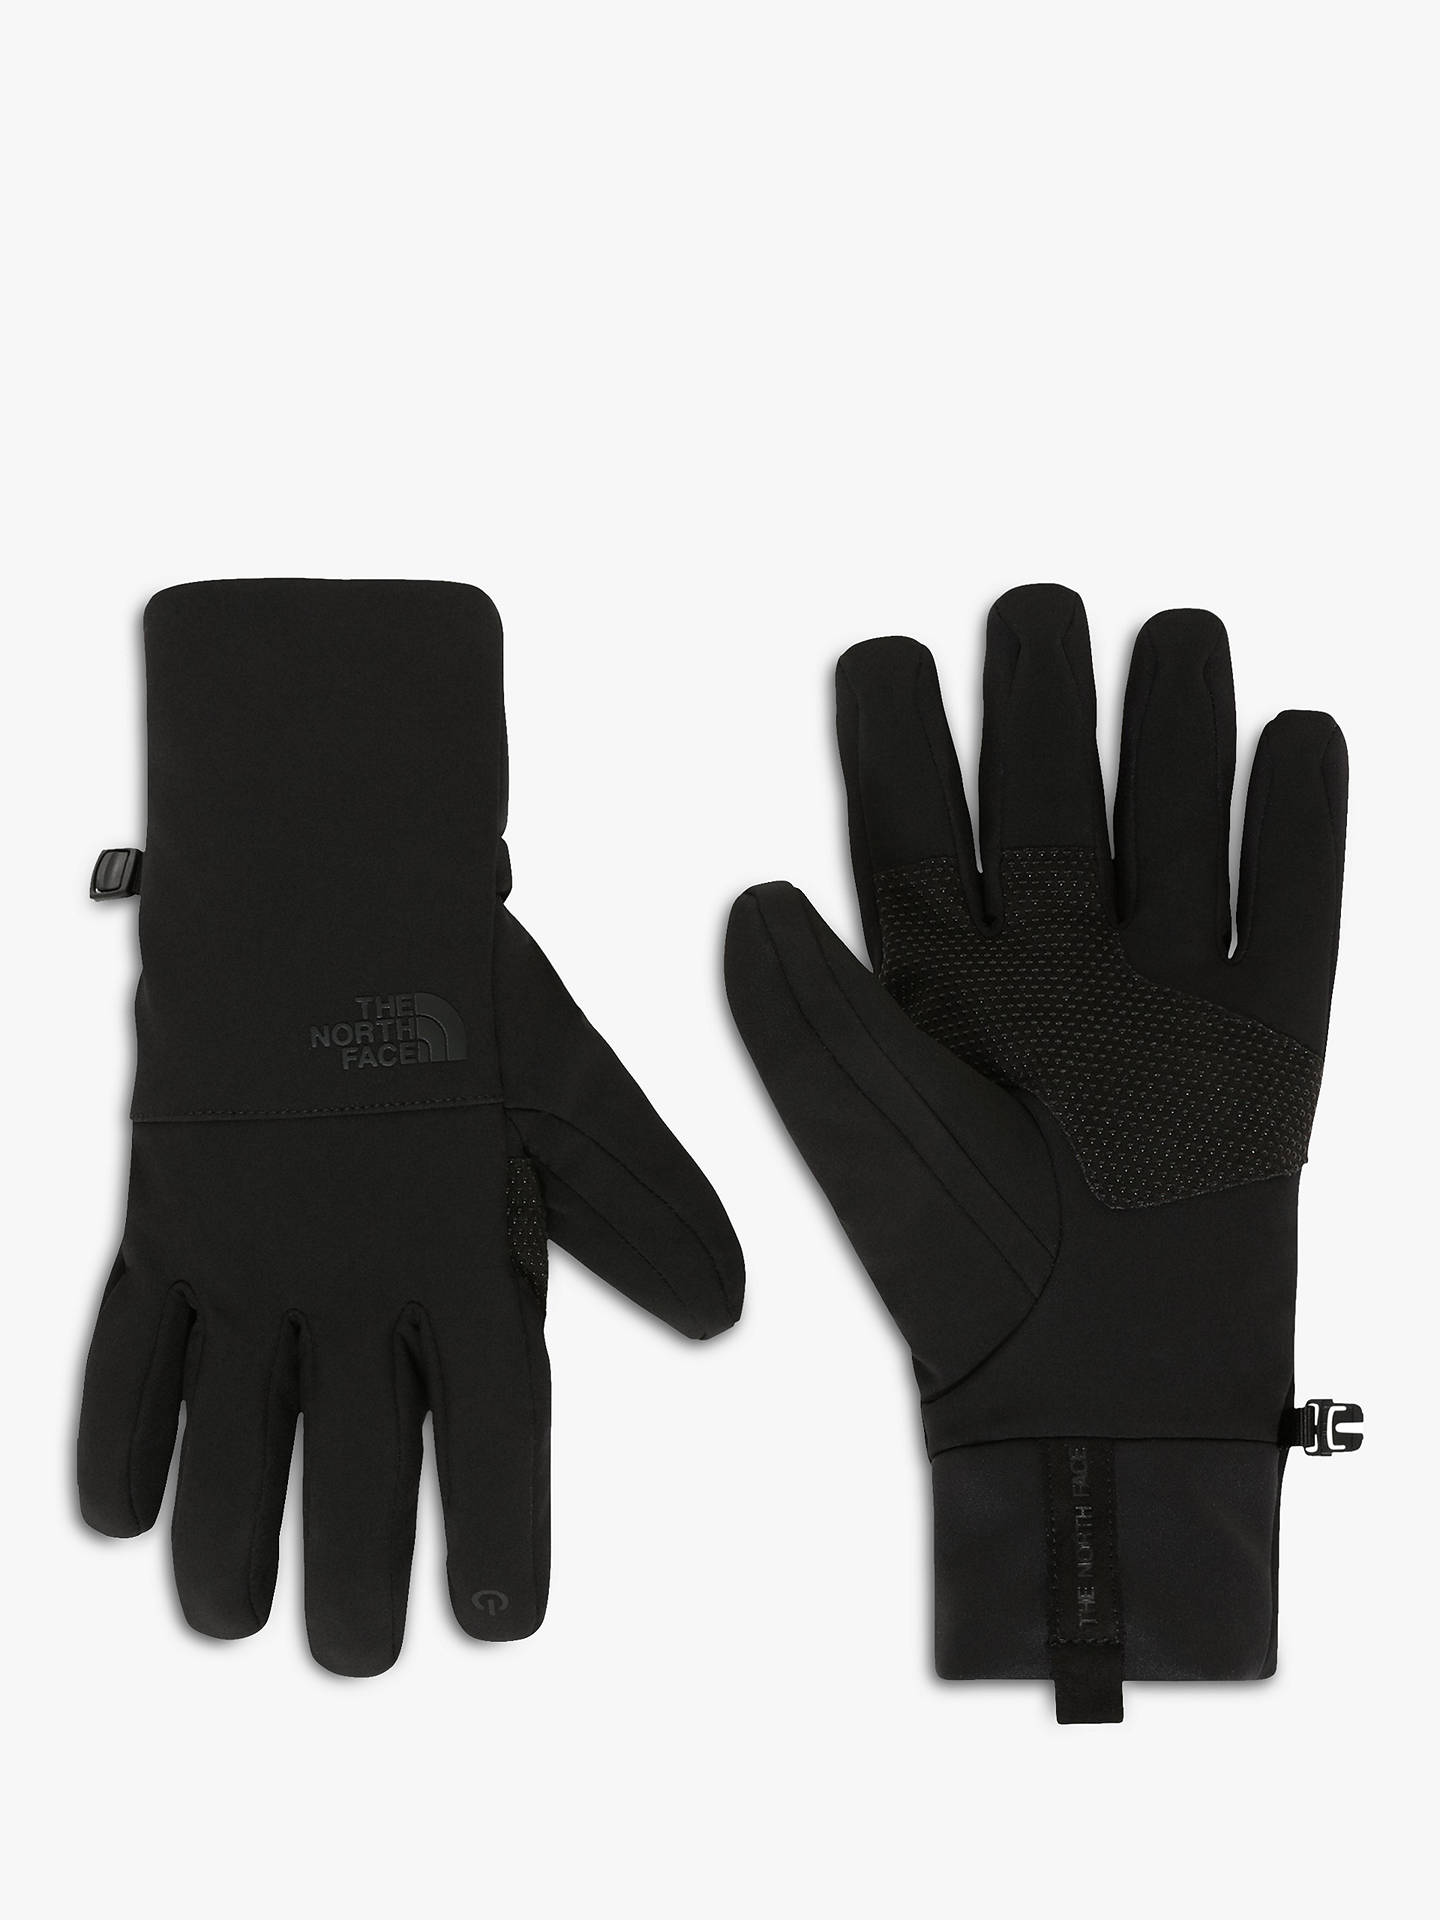 BuyThe North Face Apex Etip Men's Gloves, Black, S Online at johnlewis.com